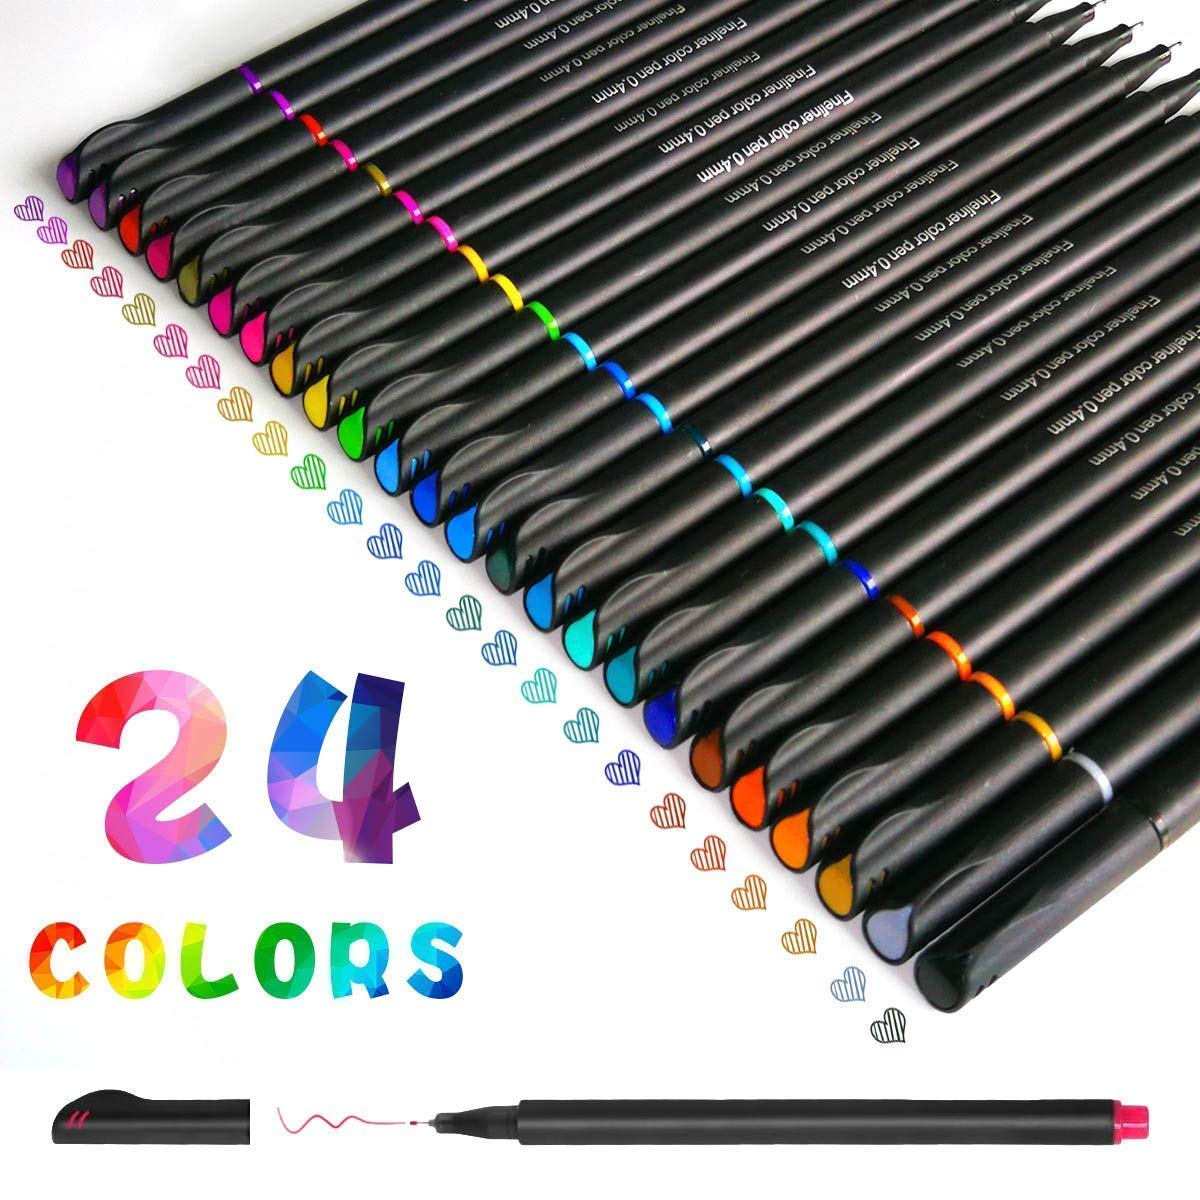 Fineliners Pens,Tukcherry Fineliner Color Pen Set Sketch Writing Drawing Pens for Bullet Journal Note Taking and Coloring Books (12)